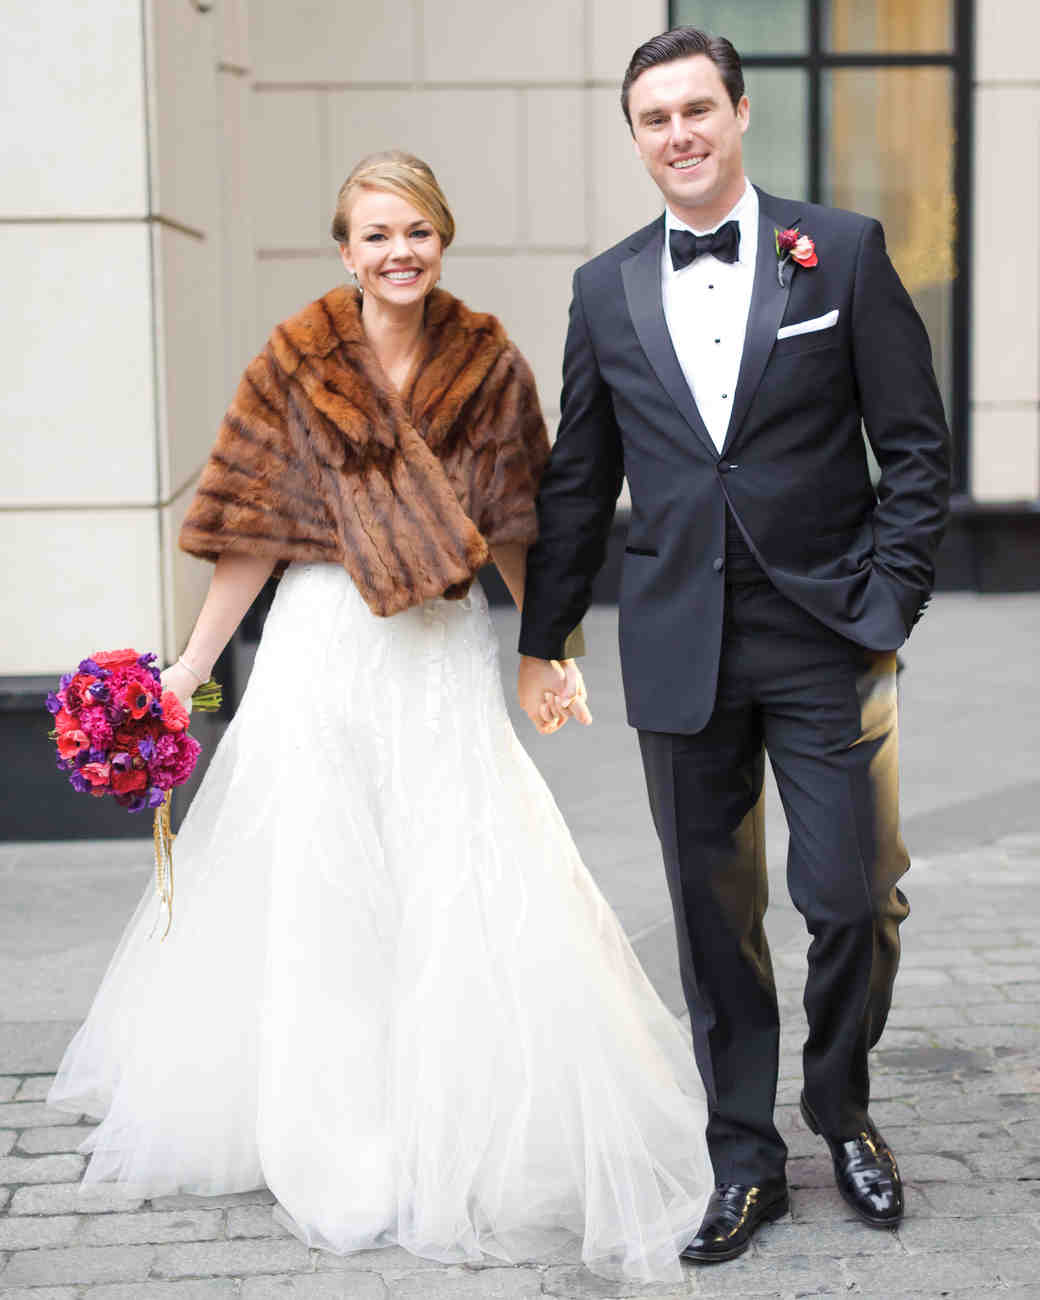 A Glamorous New Year's Eve Destination Wedding in Chicago